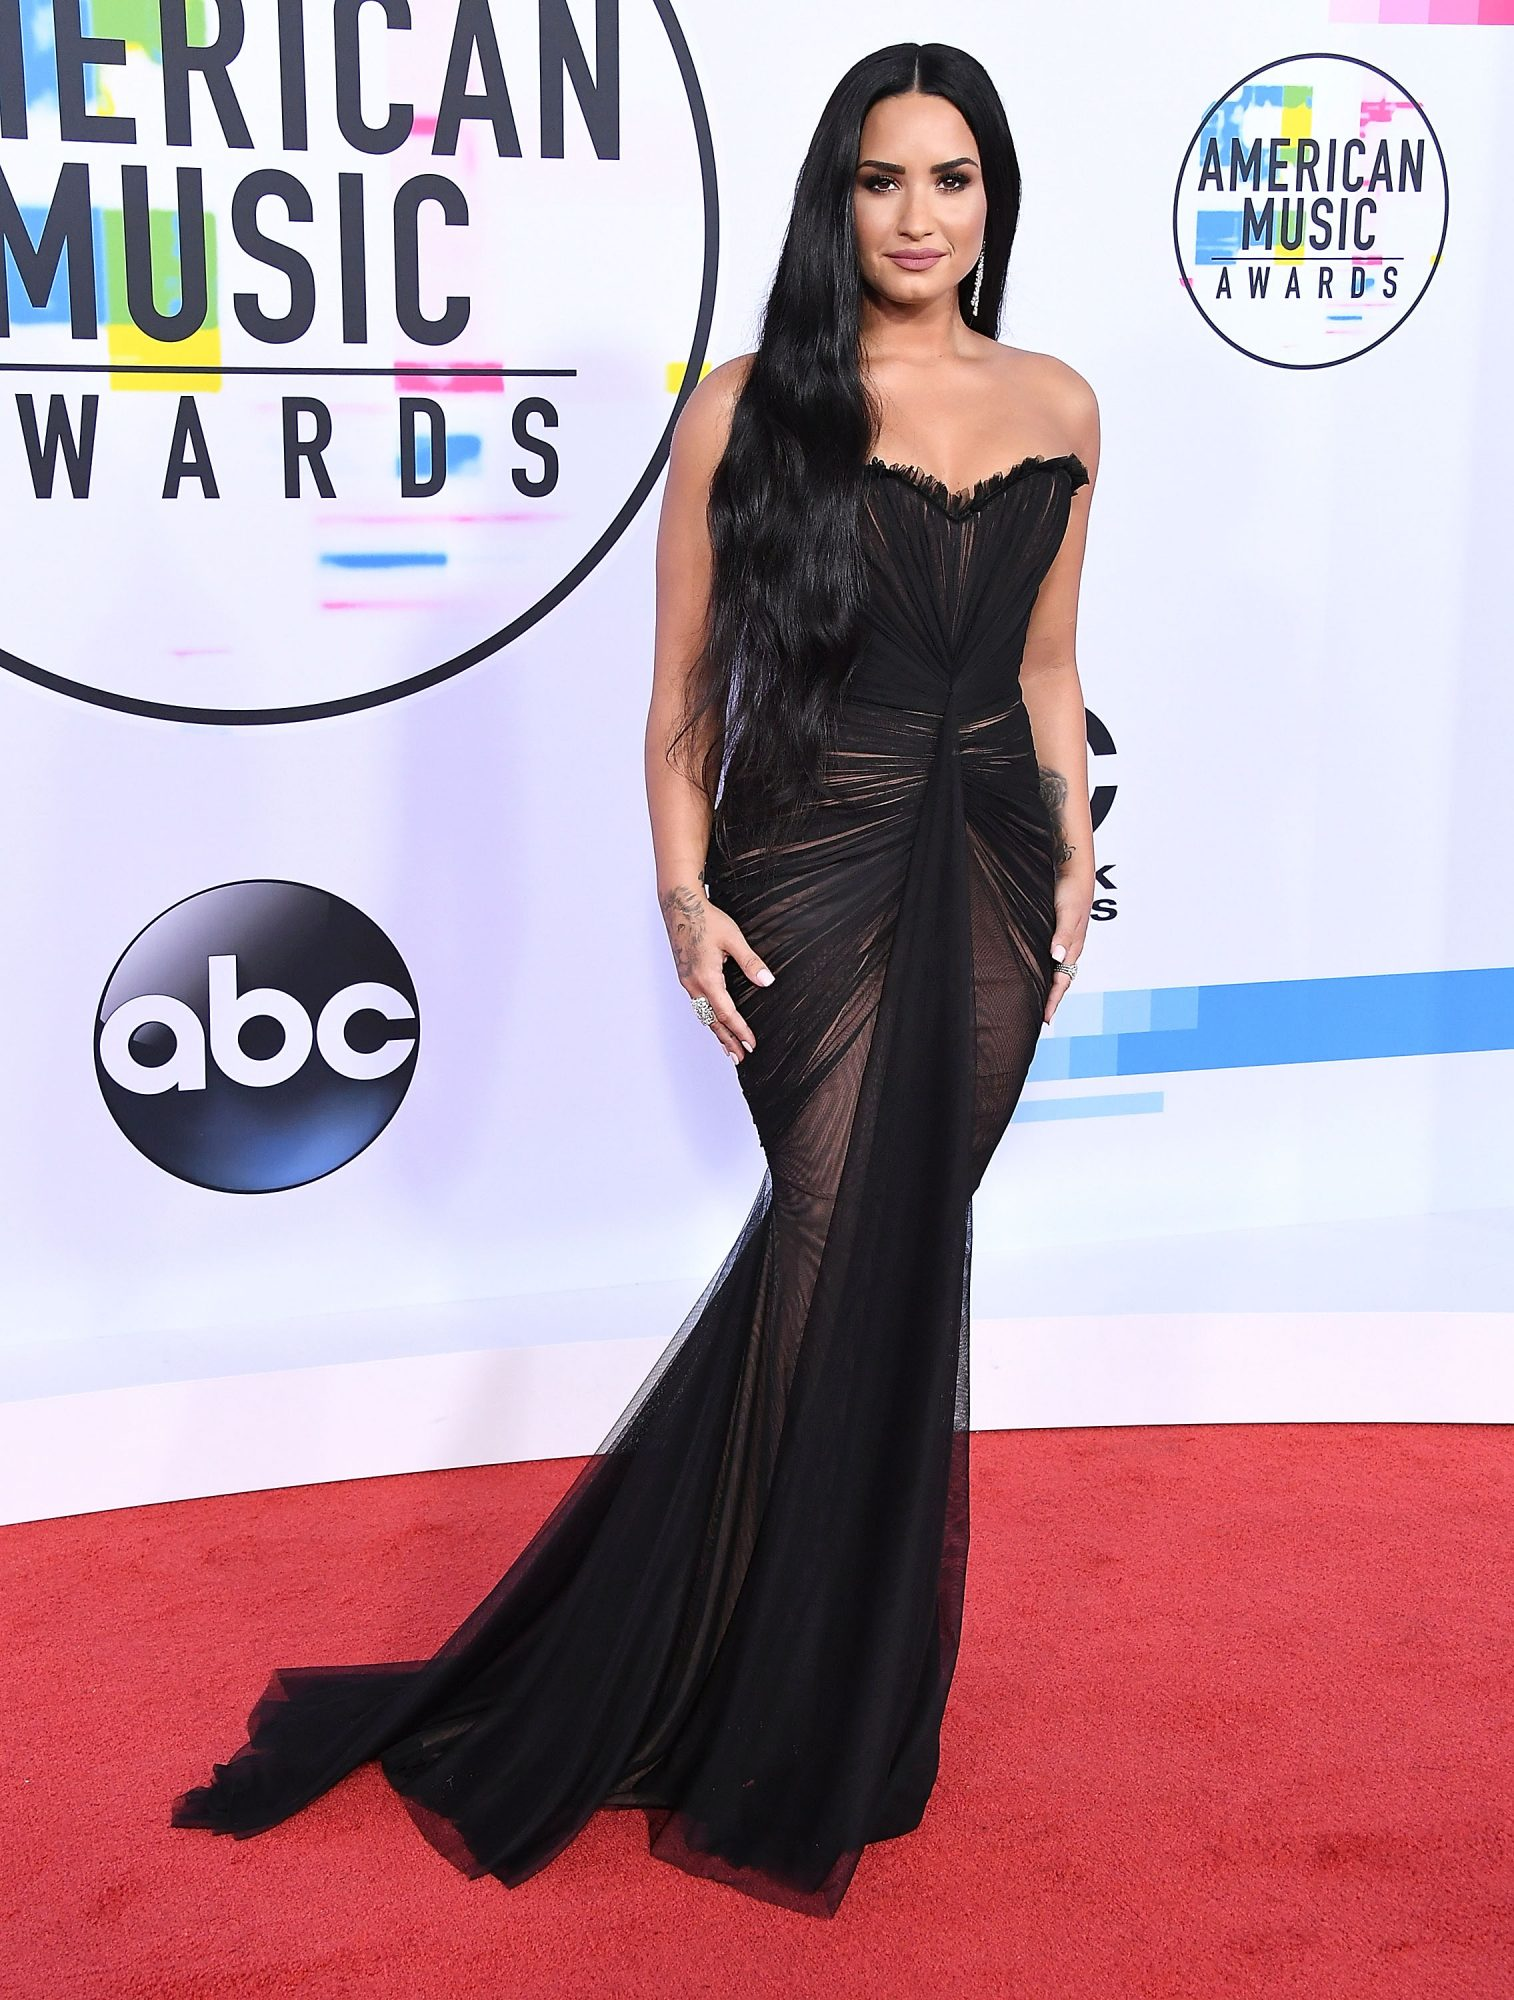 demi lovato american music awards red carpet